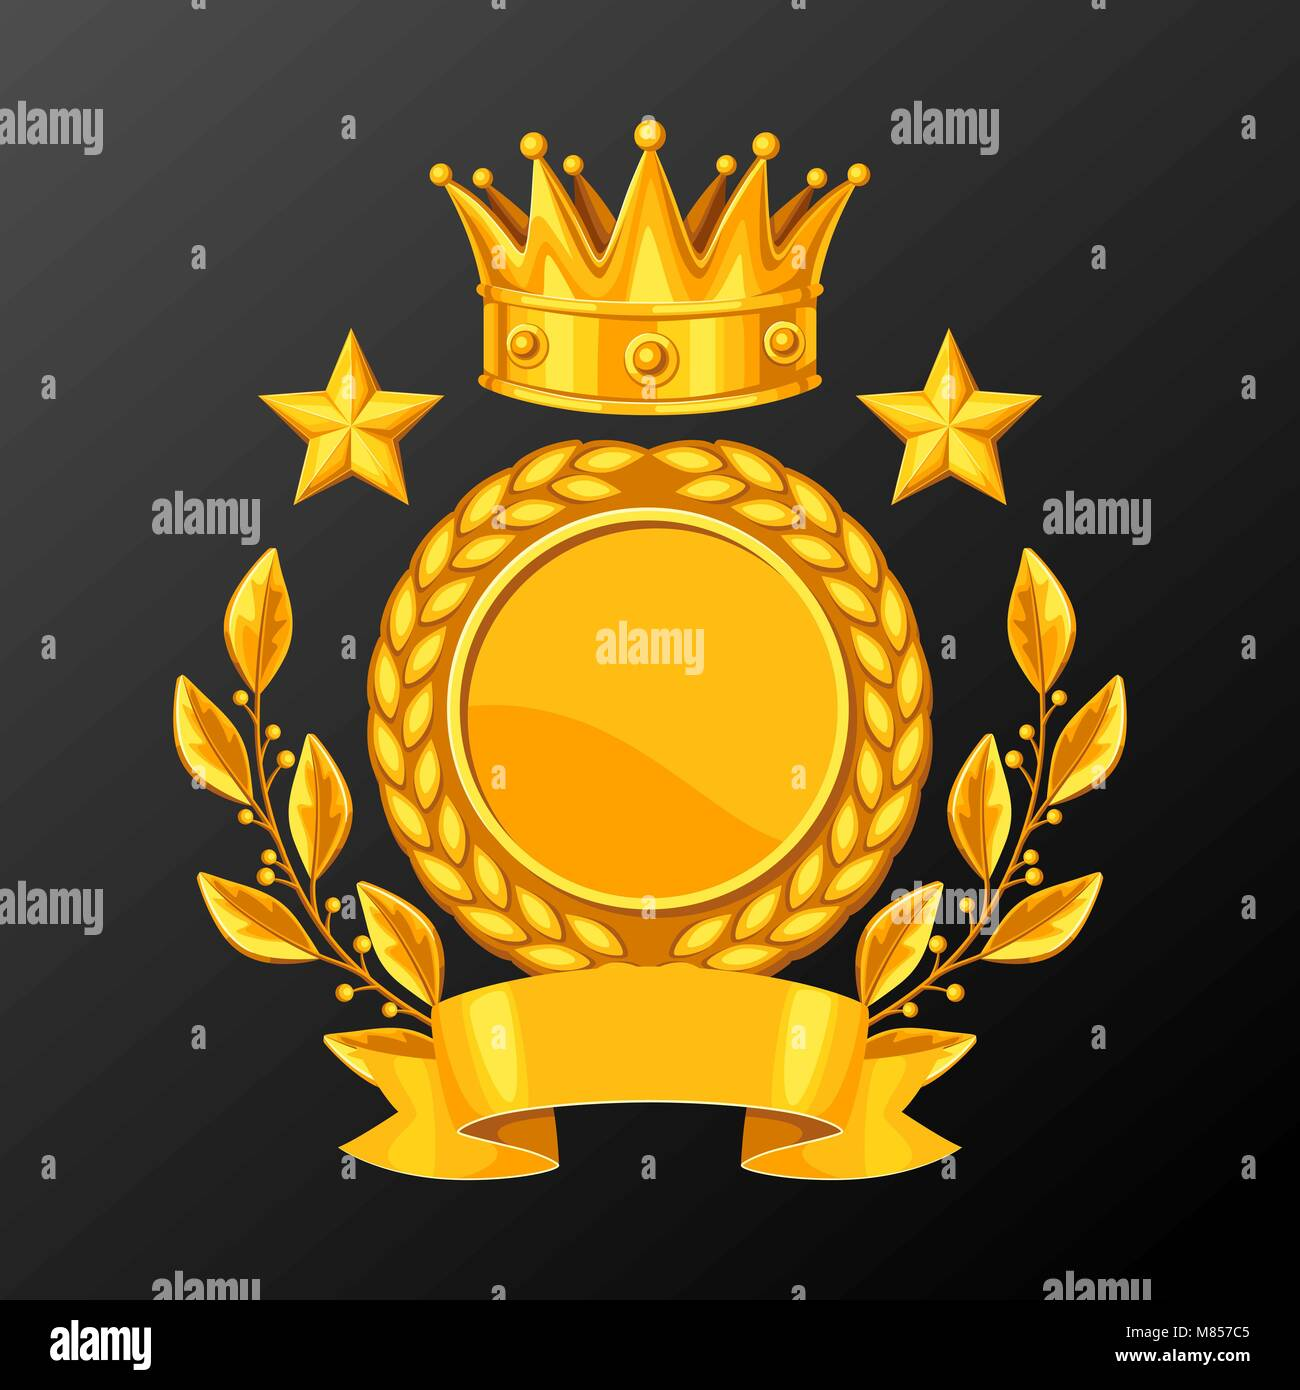 Realistic gold cup with laurel wreath. Illustration of award for sports or corporate competitions - Stock Vector